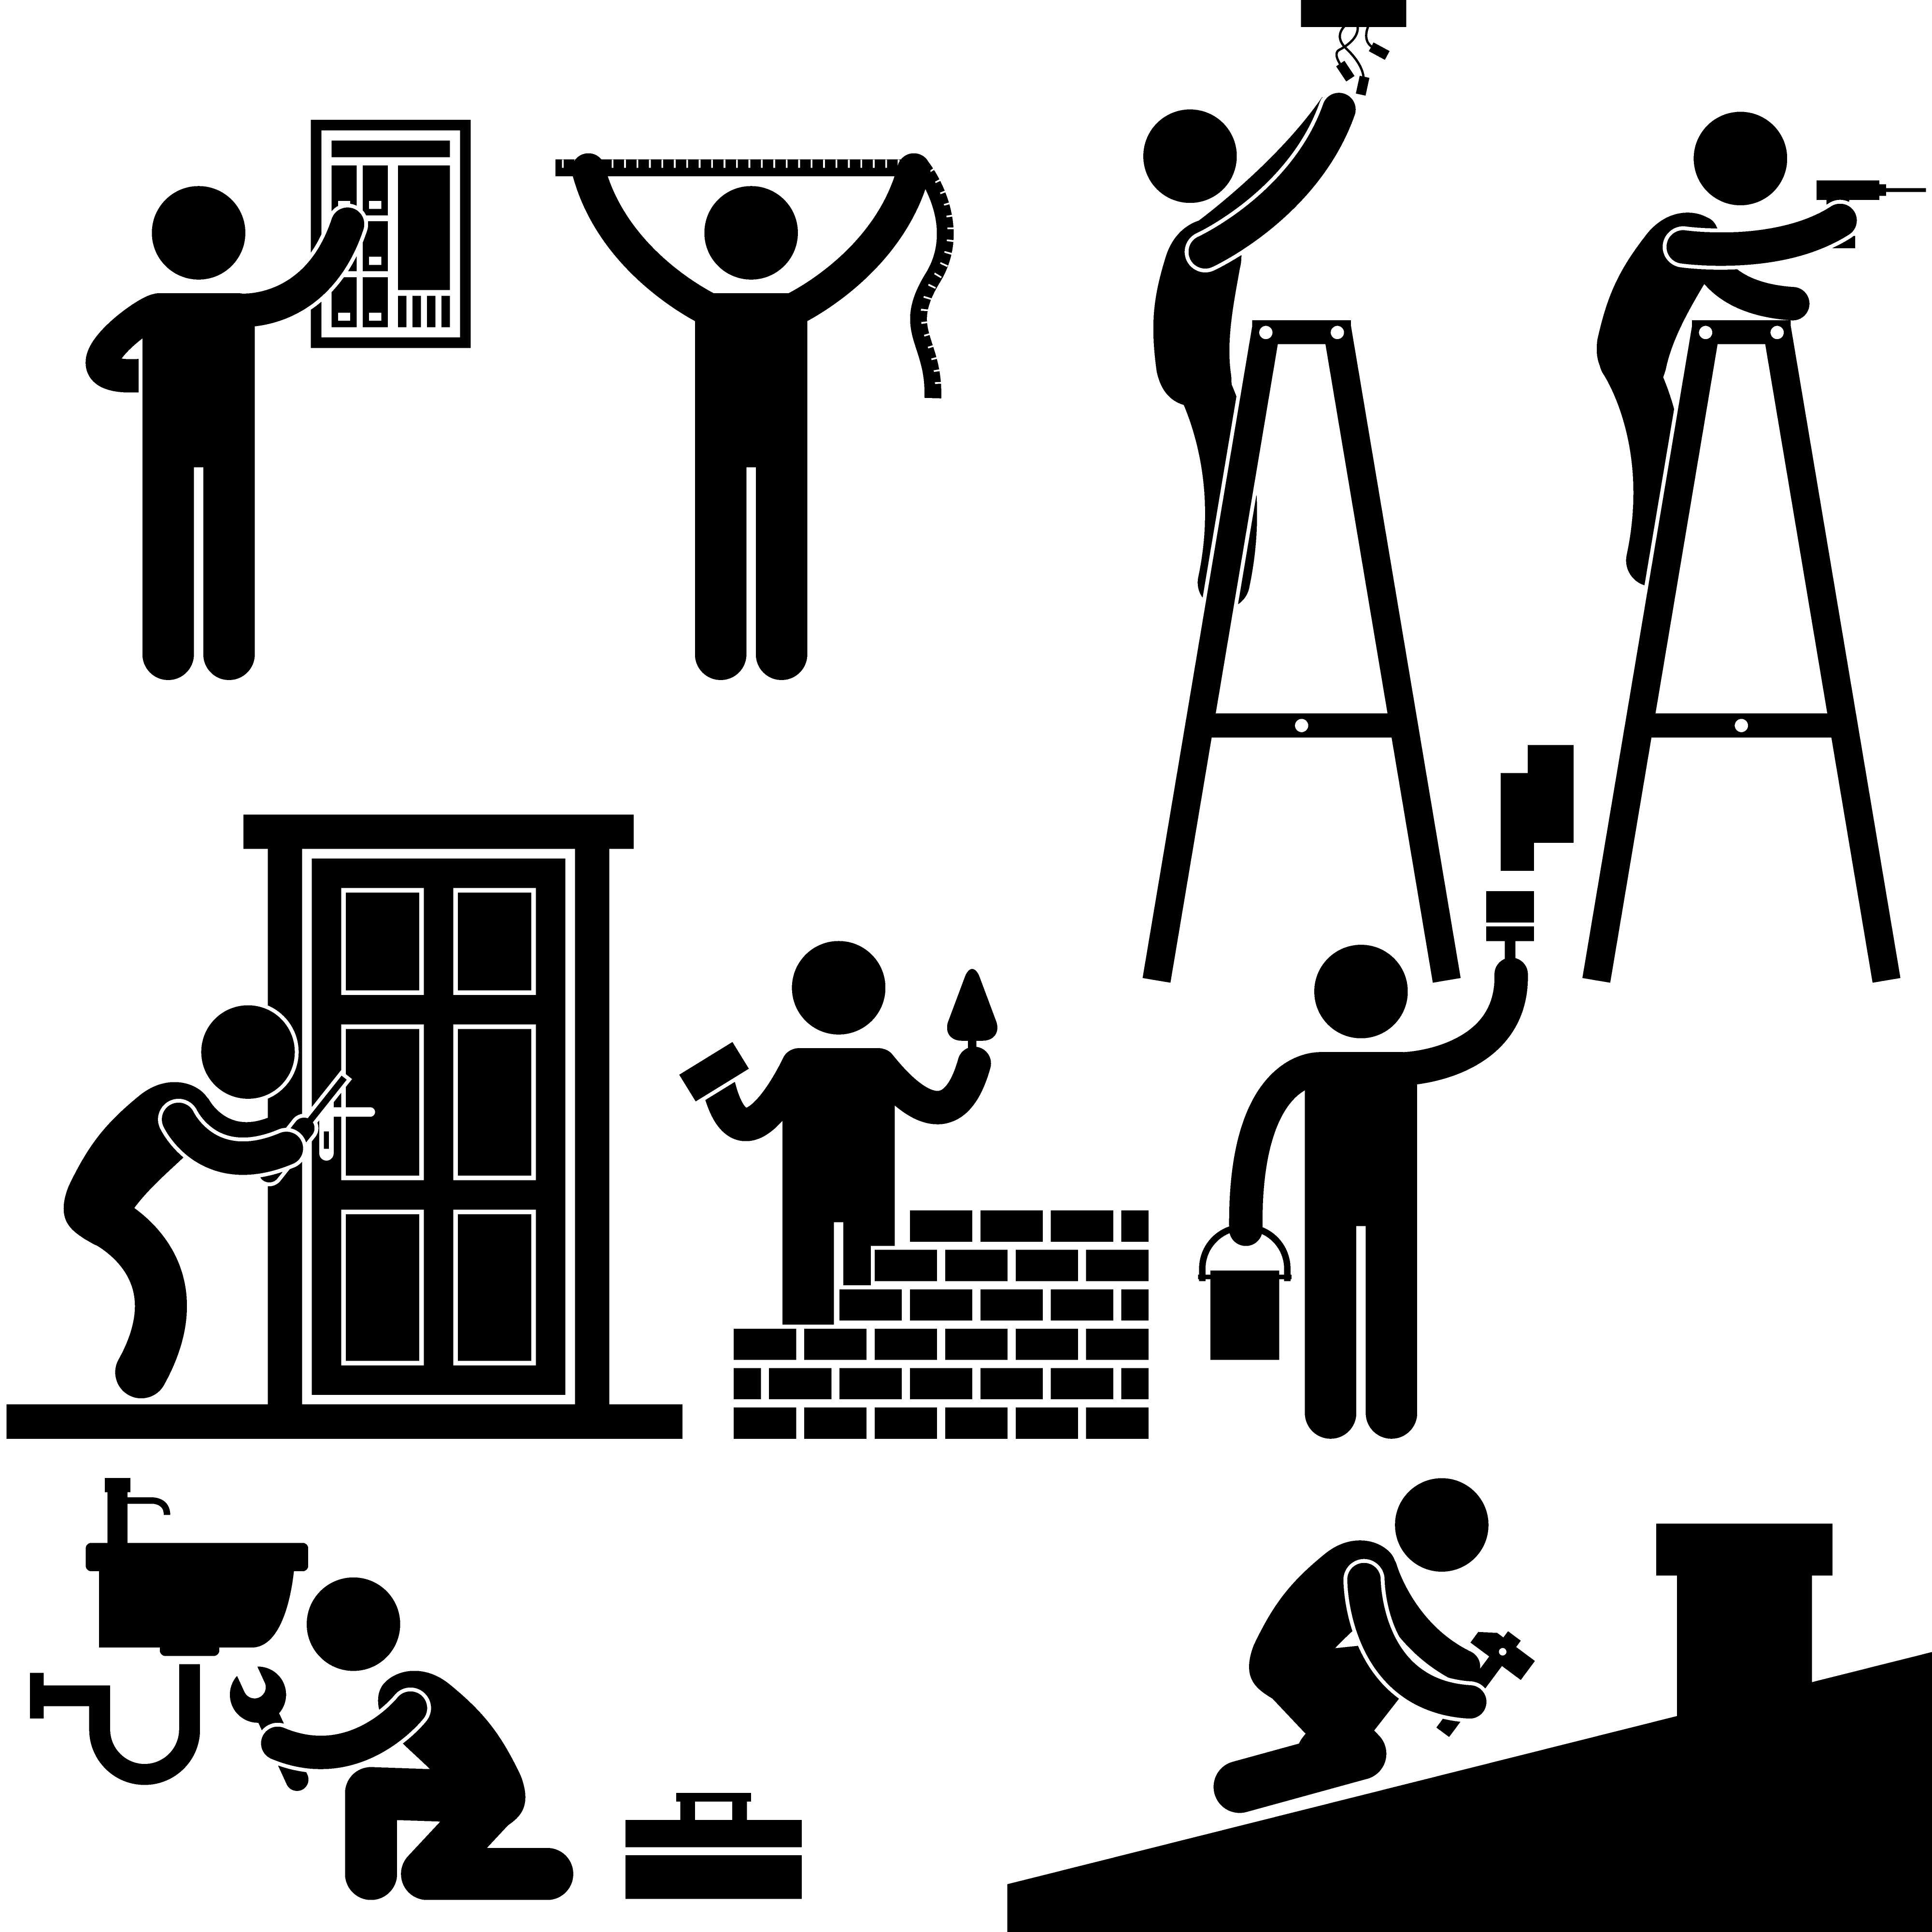 Working on roof clipart vector free library Handyman Electrician Locksmith Contractor Working Fixing ... vector free library